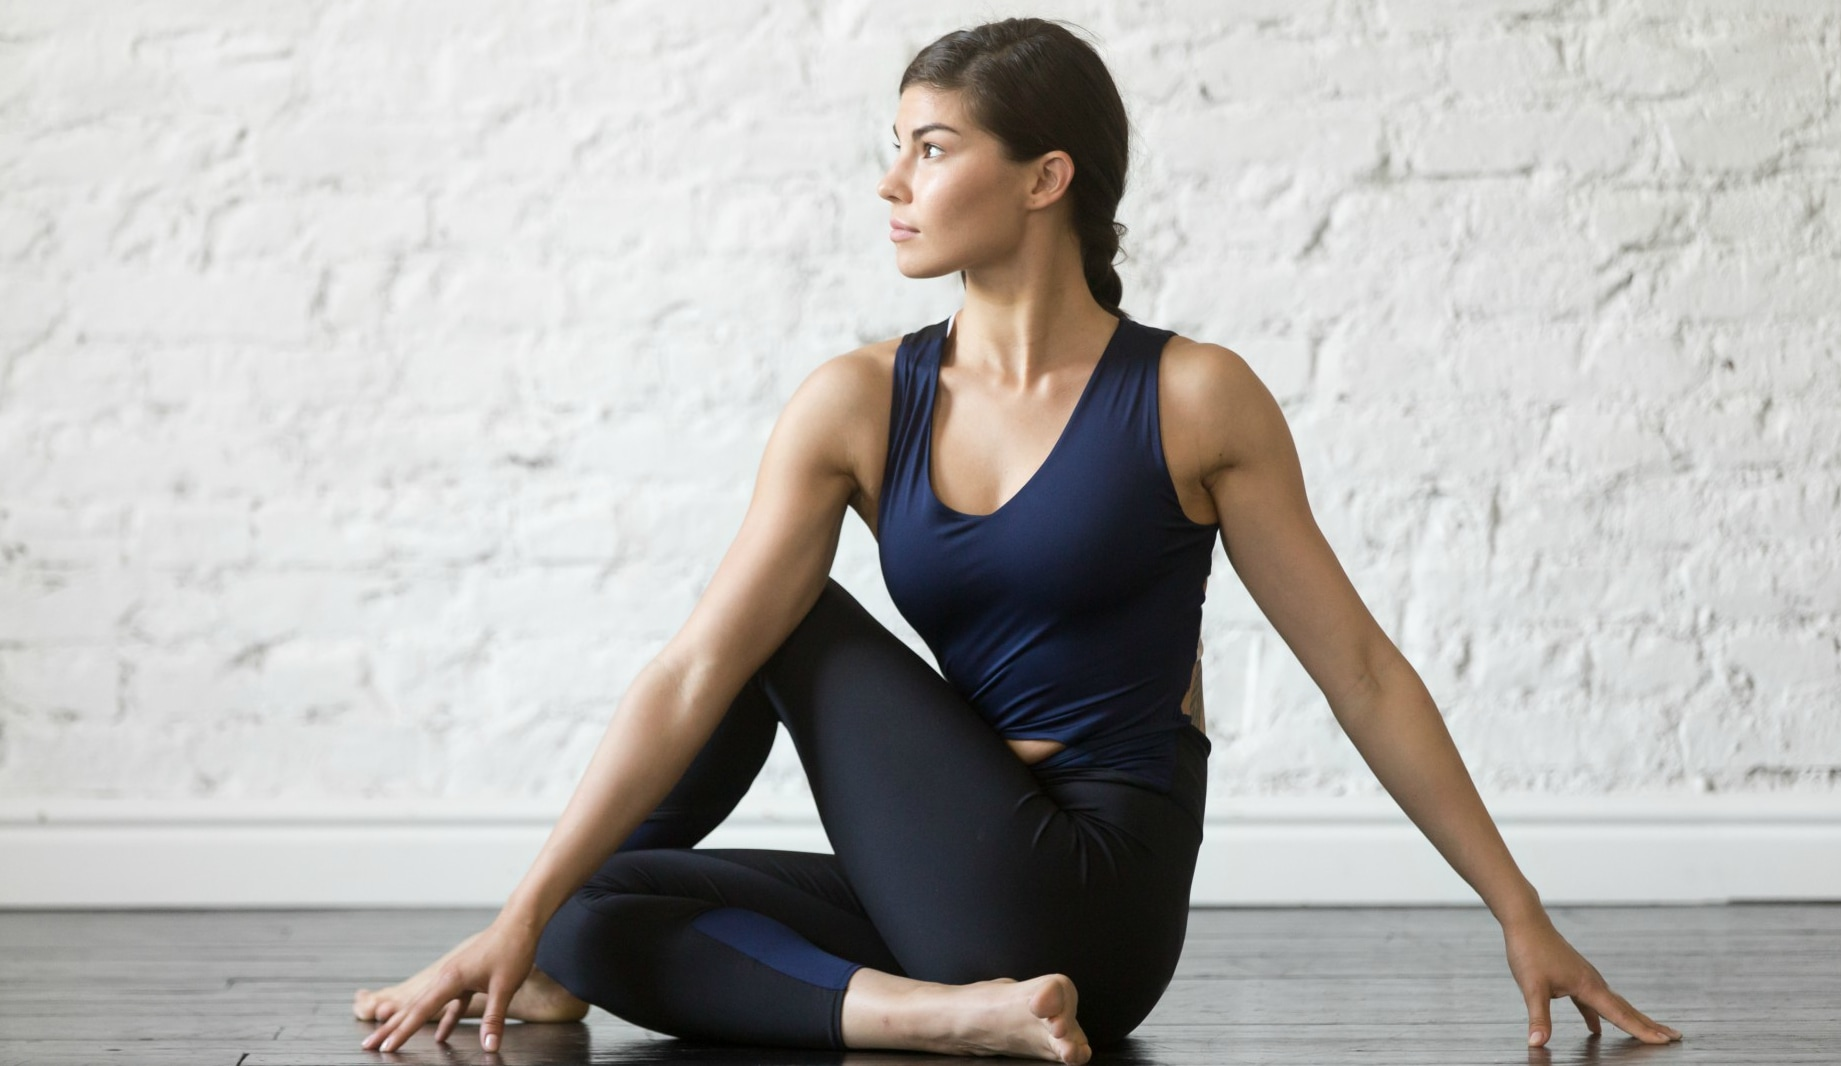 Fight the Flu With These 7 Yoga Poses